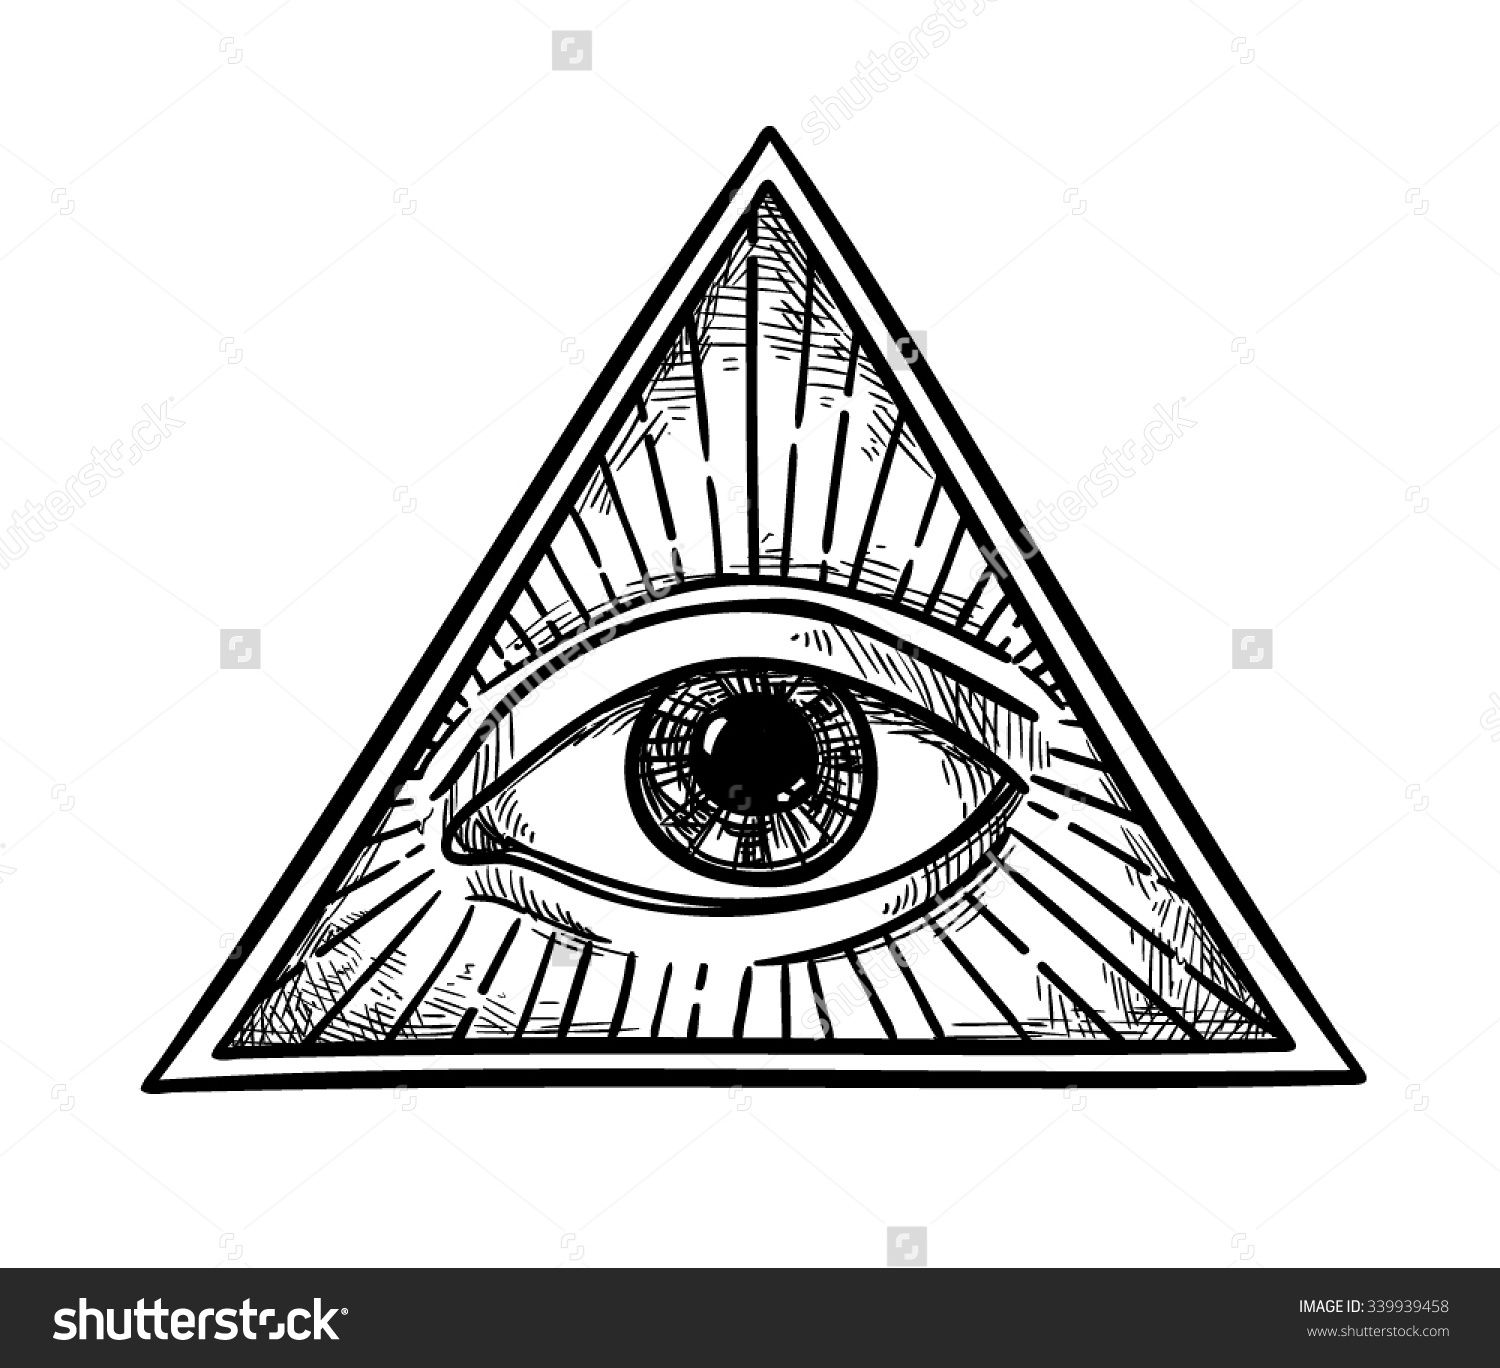 Hand drawn vector illustration all seeing eye pyramid symbol hand drawn vector illustration all seeing eye pyramid symbol freemason and spiritual vintage bcn pinterest freemason hand drawn and symbols buycottarizona Images